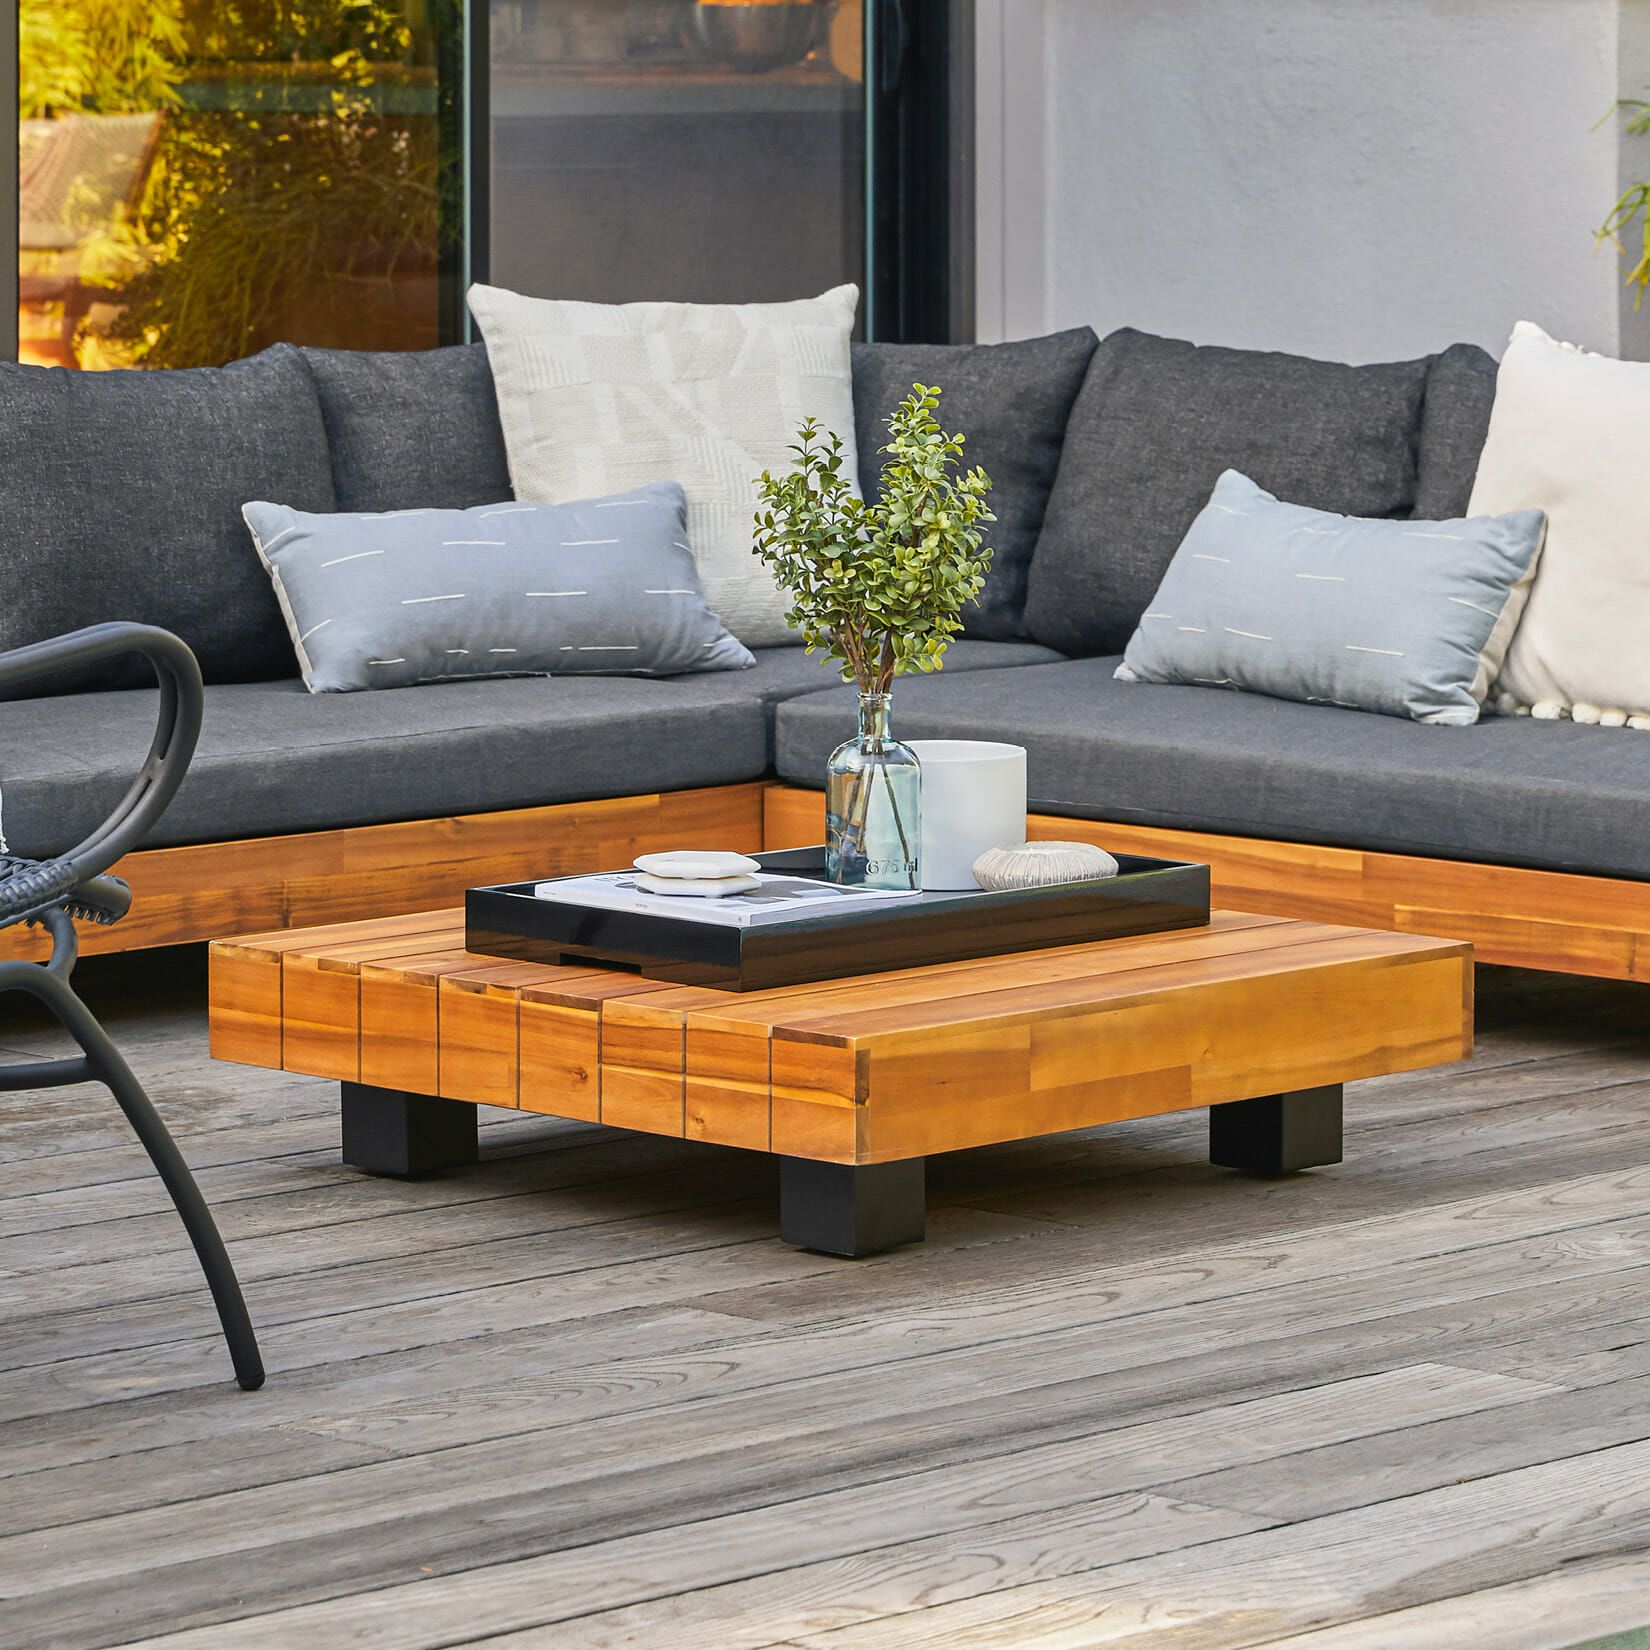 Lubek Tuscan Brown Coffee Table Outdoor Coffee Tables Beautiful Houses Interior Coffee Table Inspiration [ 1650 x 1650 Pixel ]